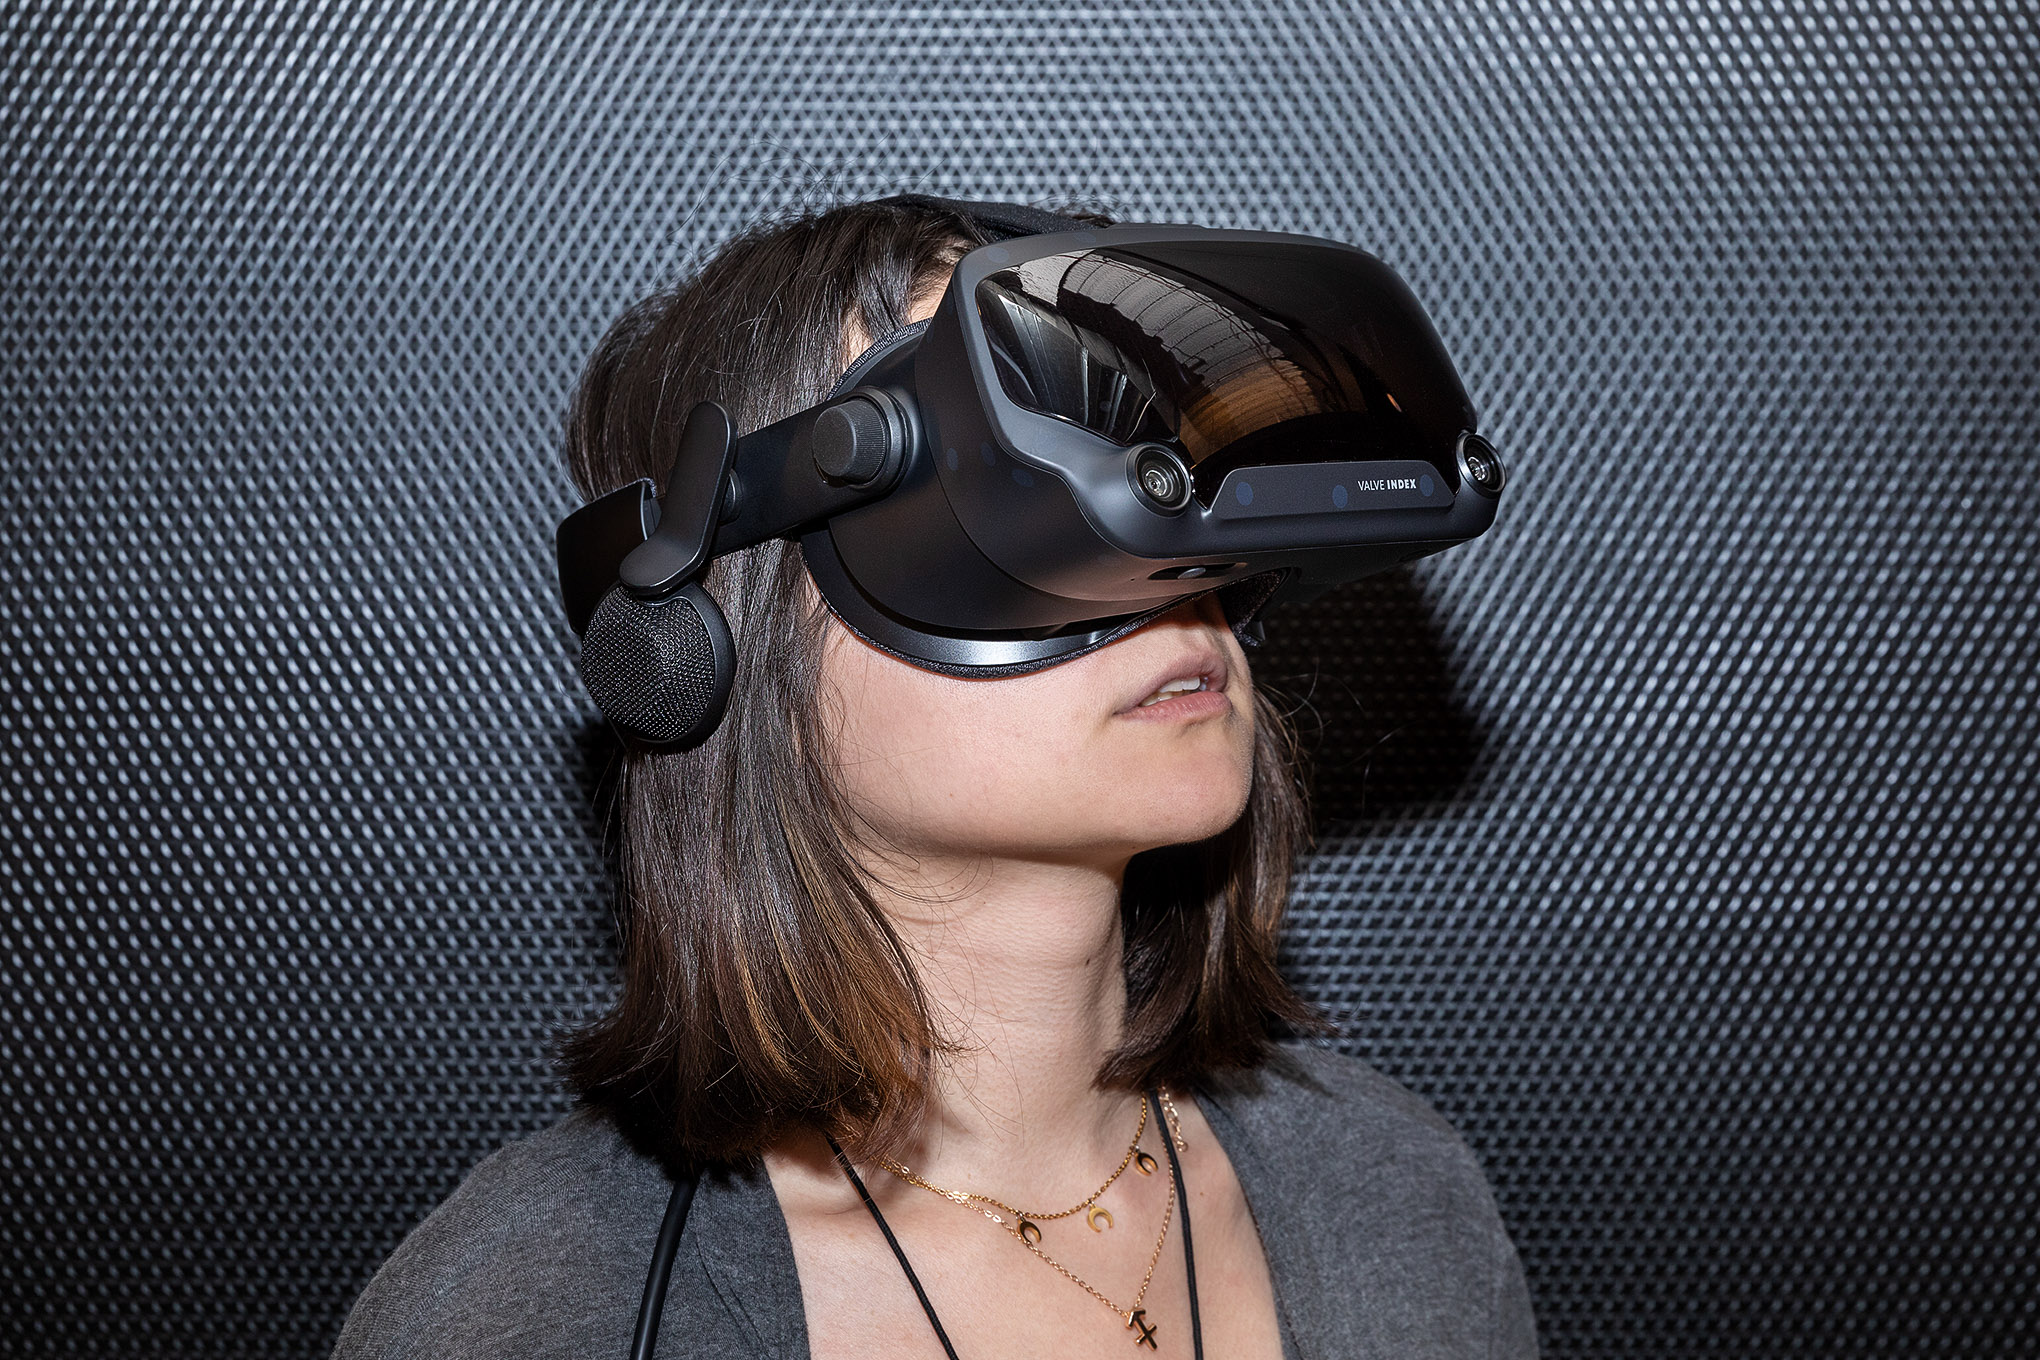 Valve Index review: $999 buys you the best VR experience yet — when it works